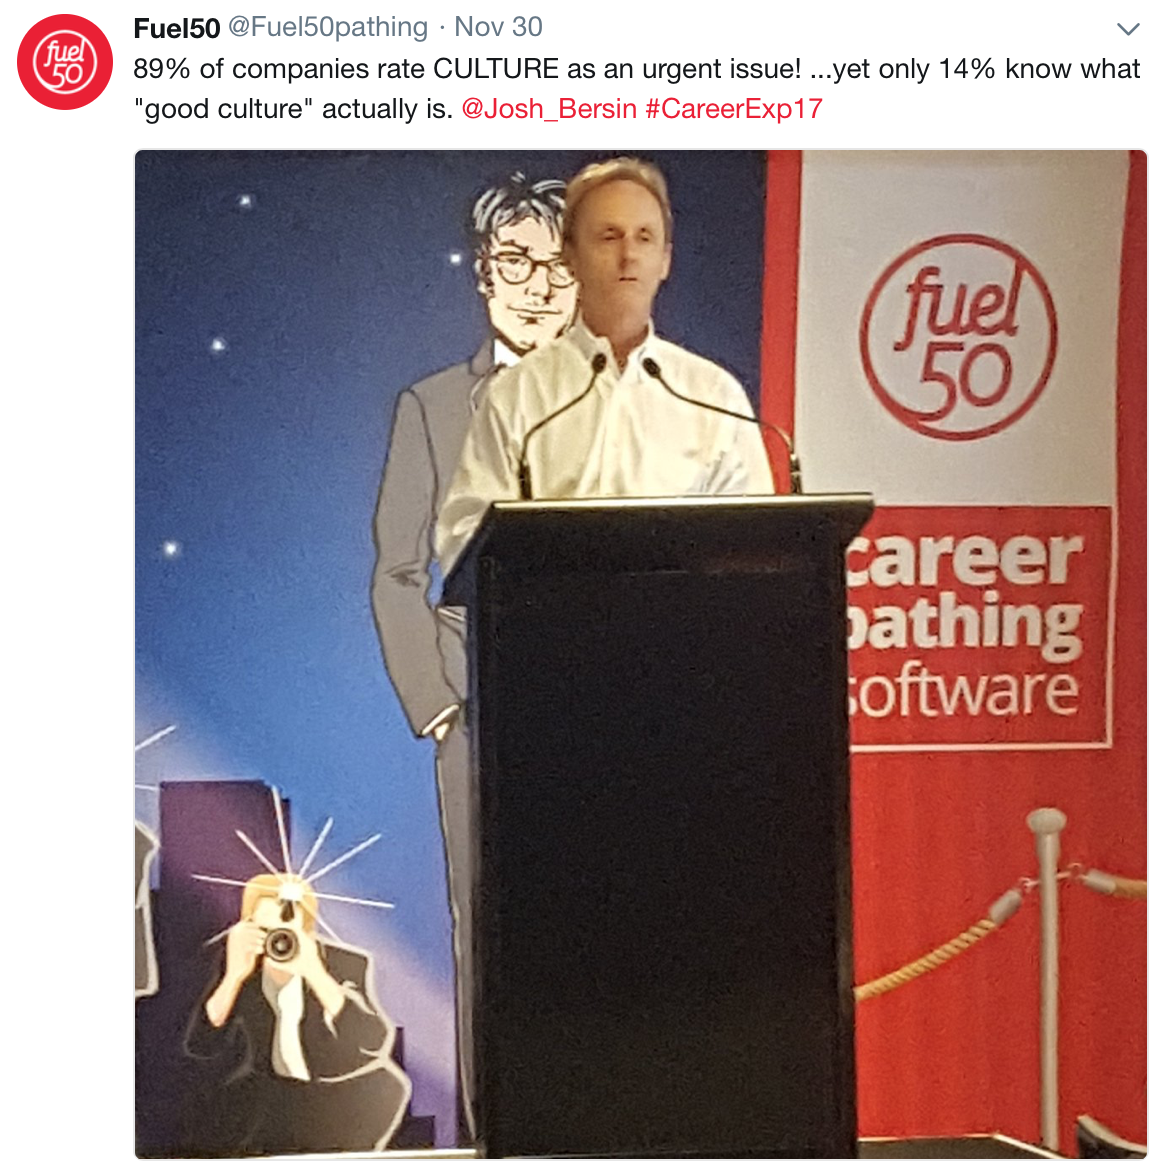 Career Experience Conference & Awards by Fuel50 - Josh Bersin